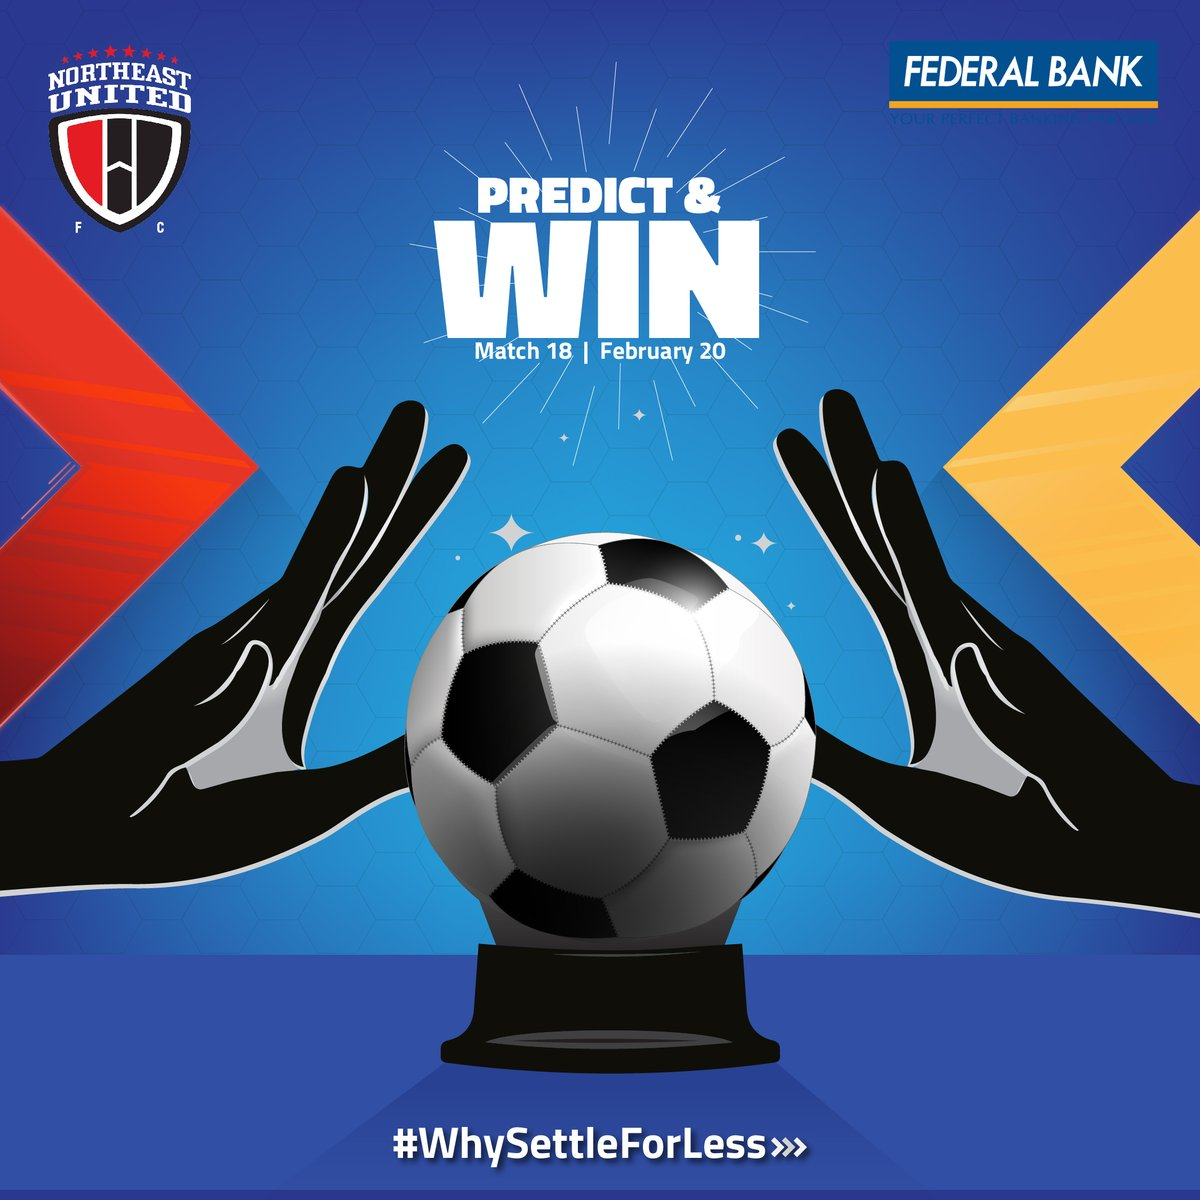 Predict the goal margin of the match between NEUFC & Hyderabad on 20.02.2020 and stand a chance to win some amazing prizes.  T & C: http://bit.ly/PredictNWin   #WhySettleForLess #NEUFC #ISL #FederalBankLtd